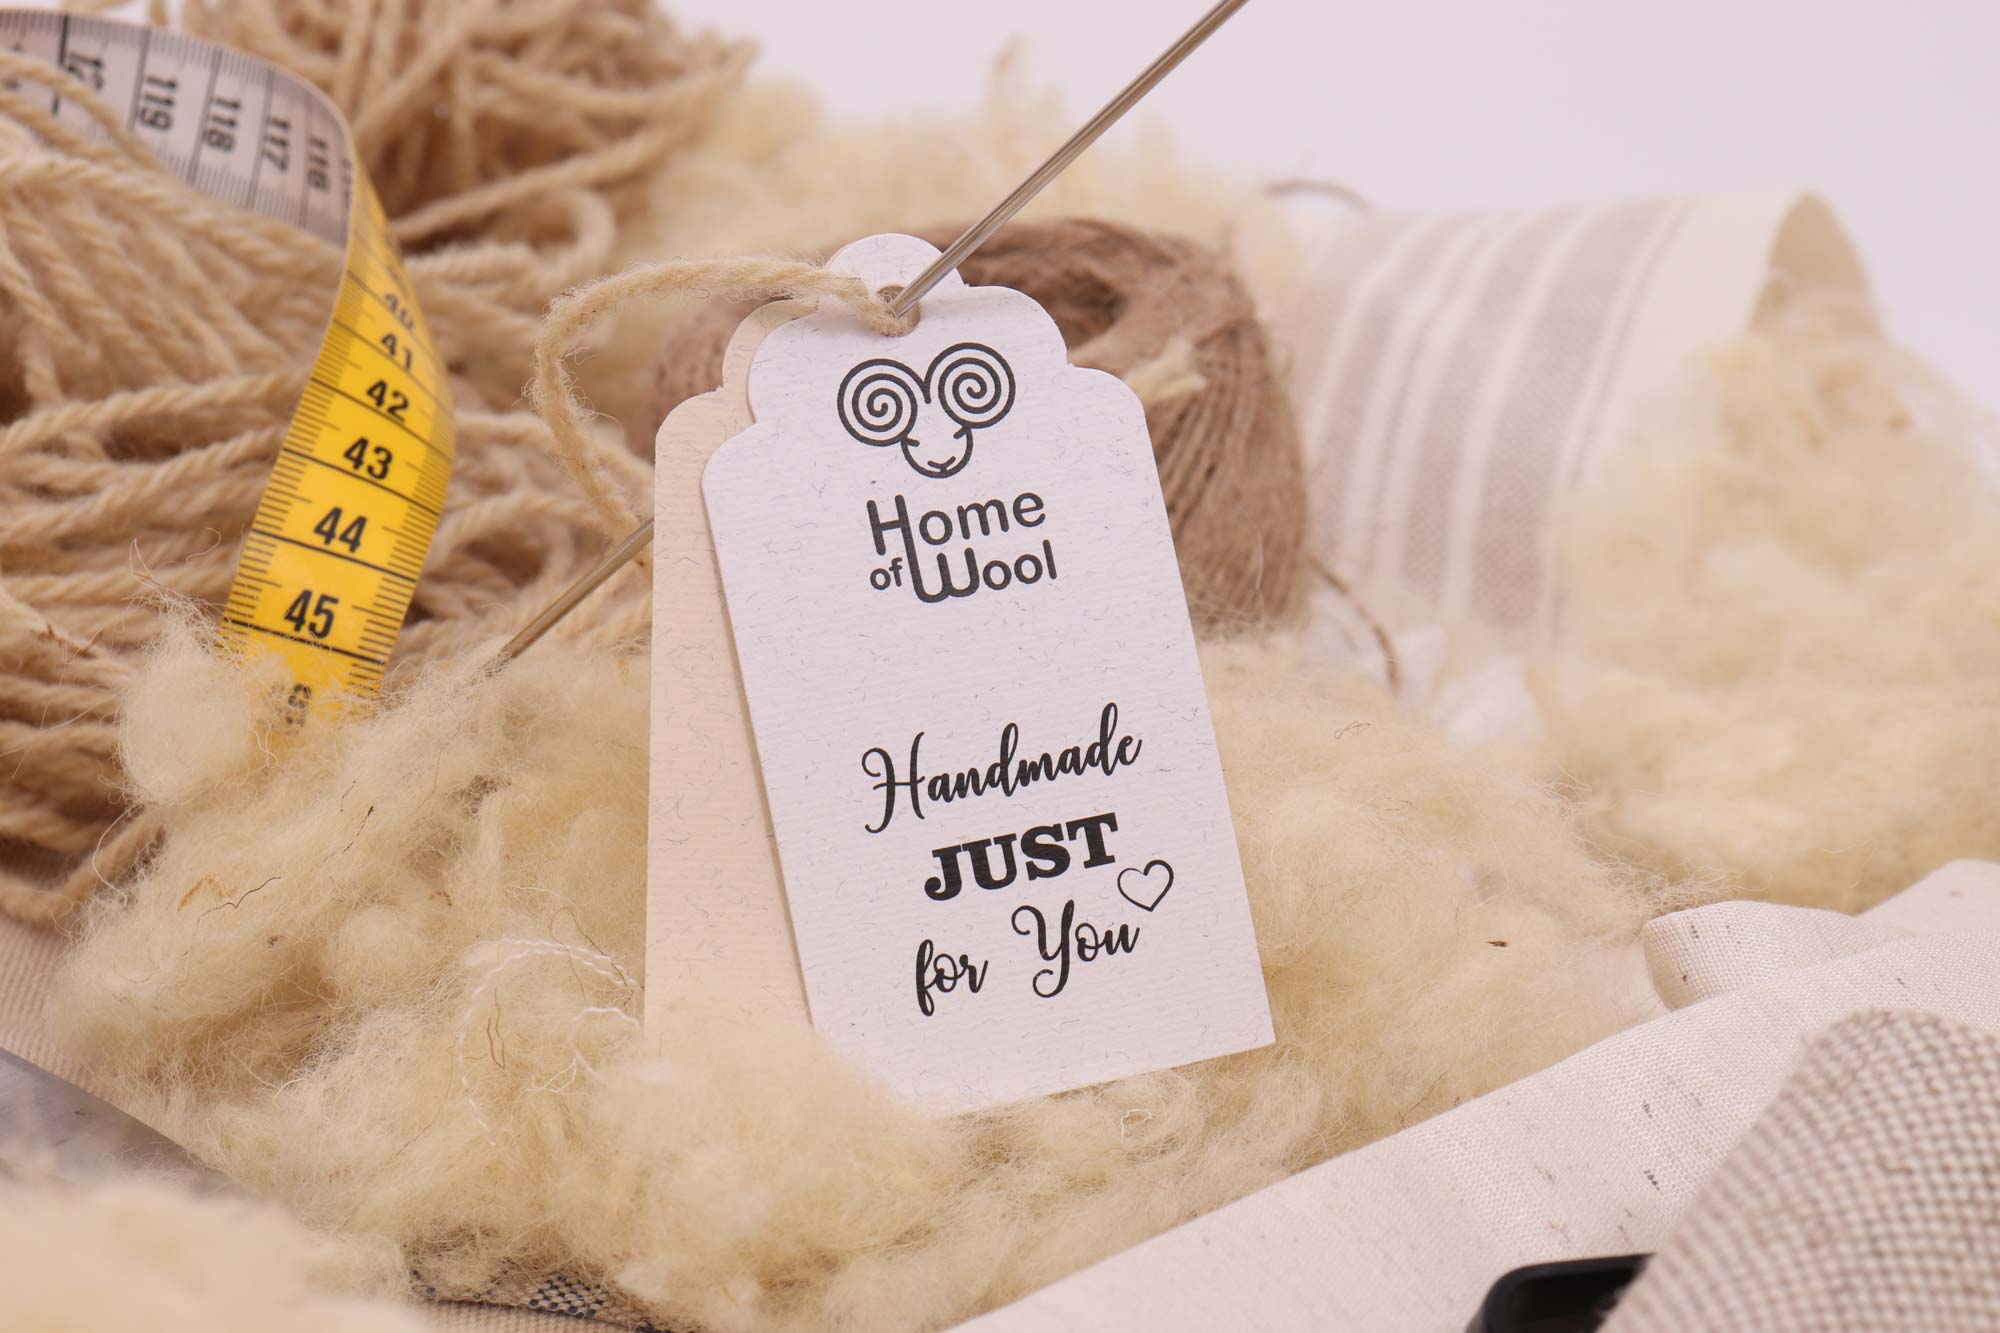 Home of Wool - wool and handmade just for you tag